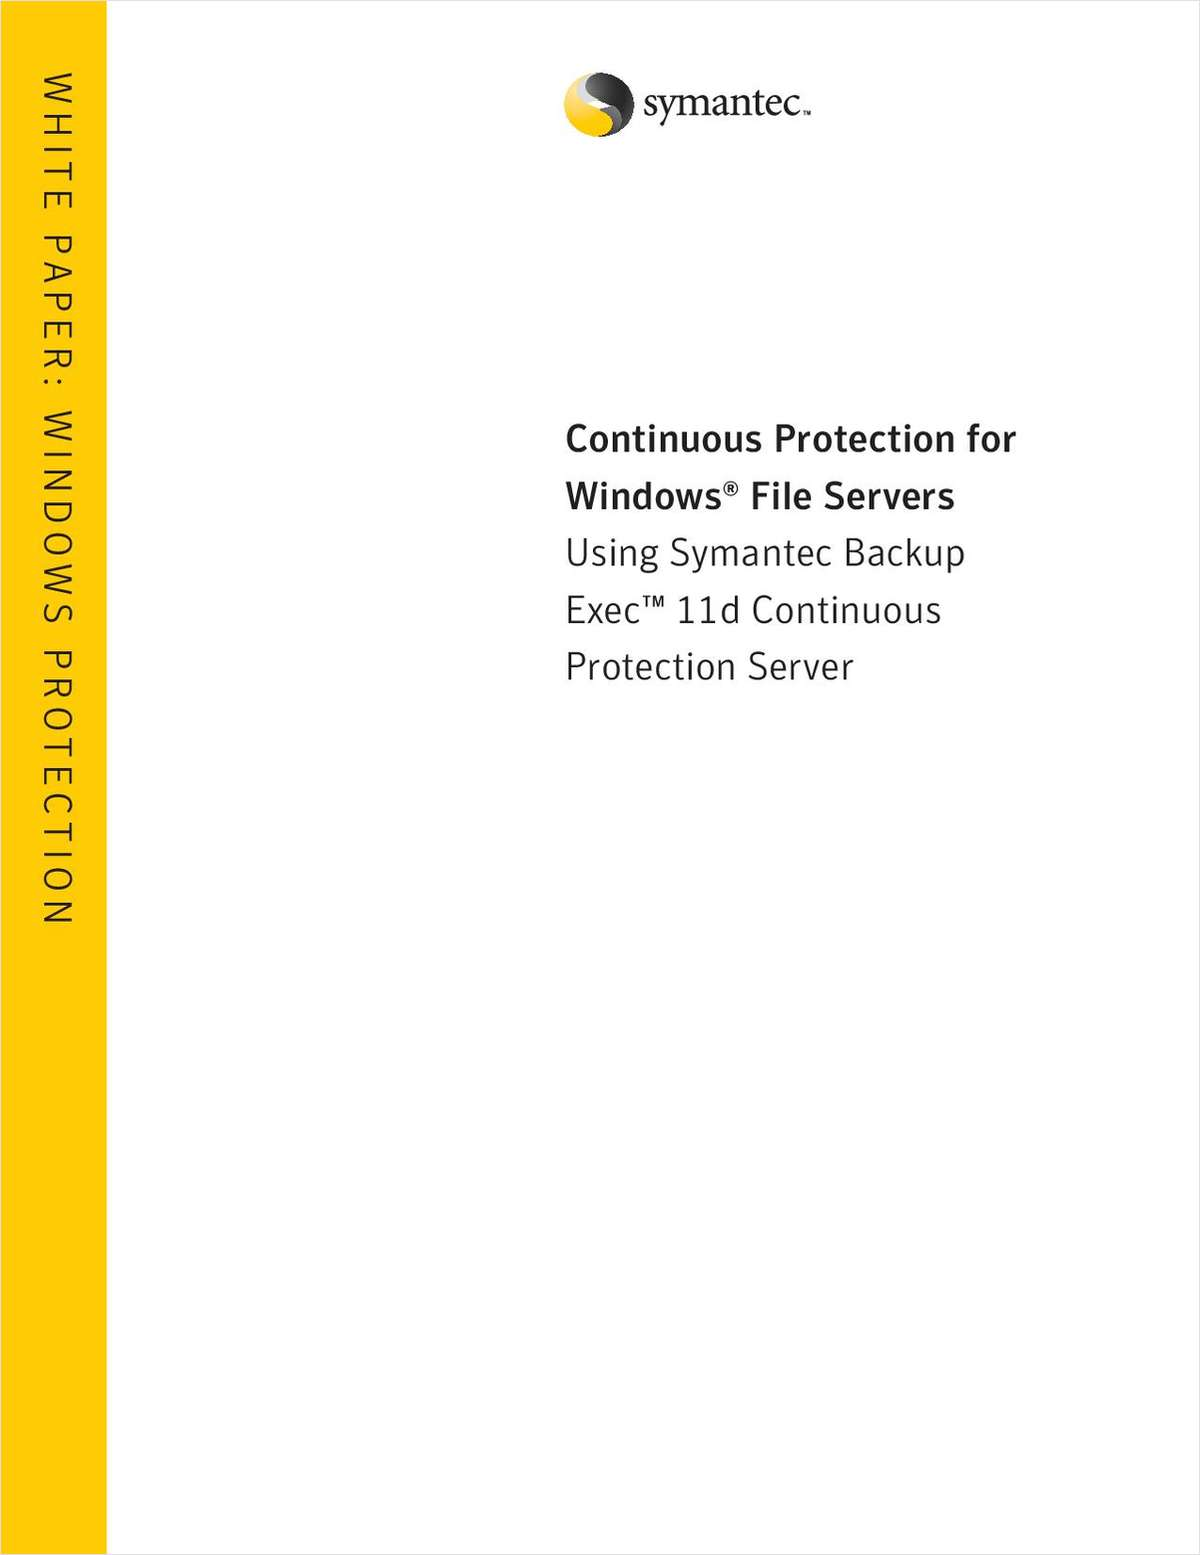 Continuous Protection for Windows® File Servers Using Symantec Backup Exec™ 11d Continuous Protection Server